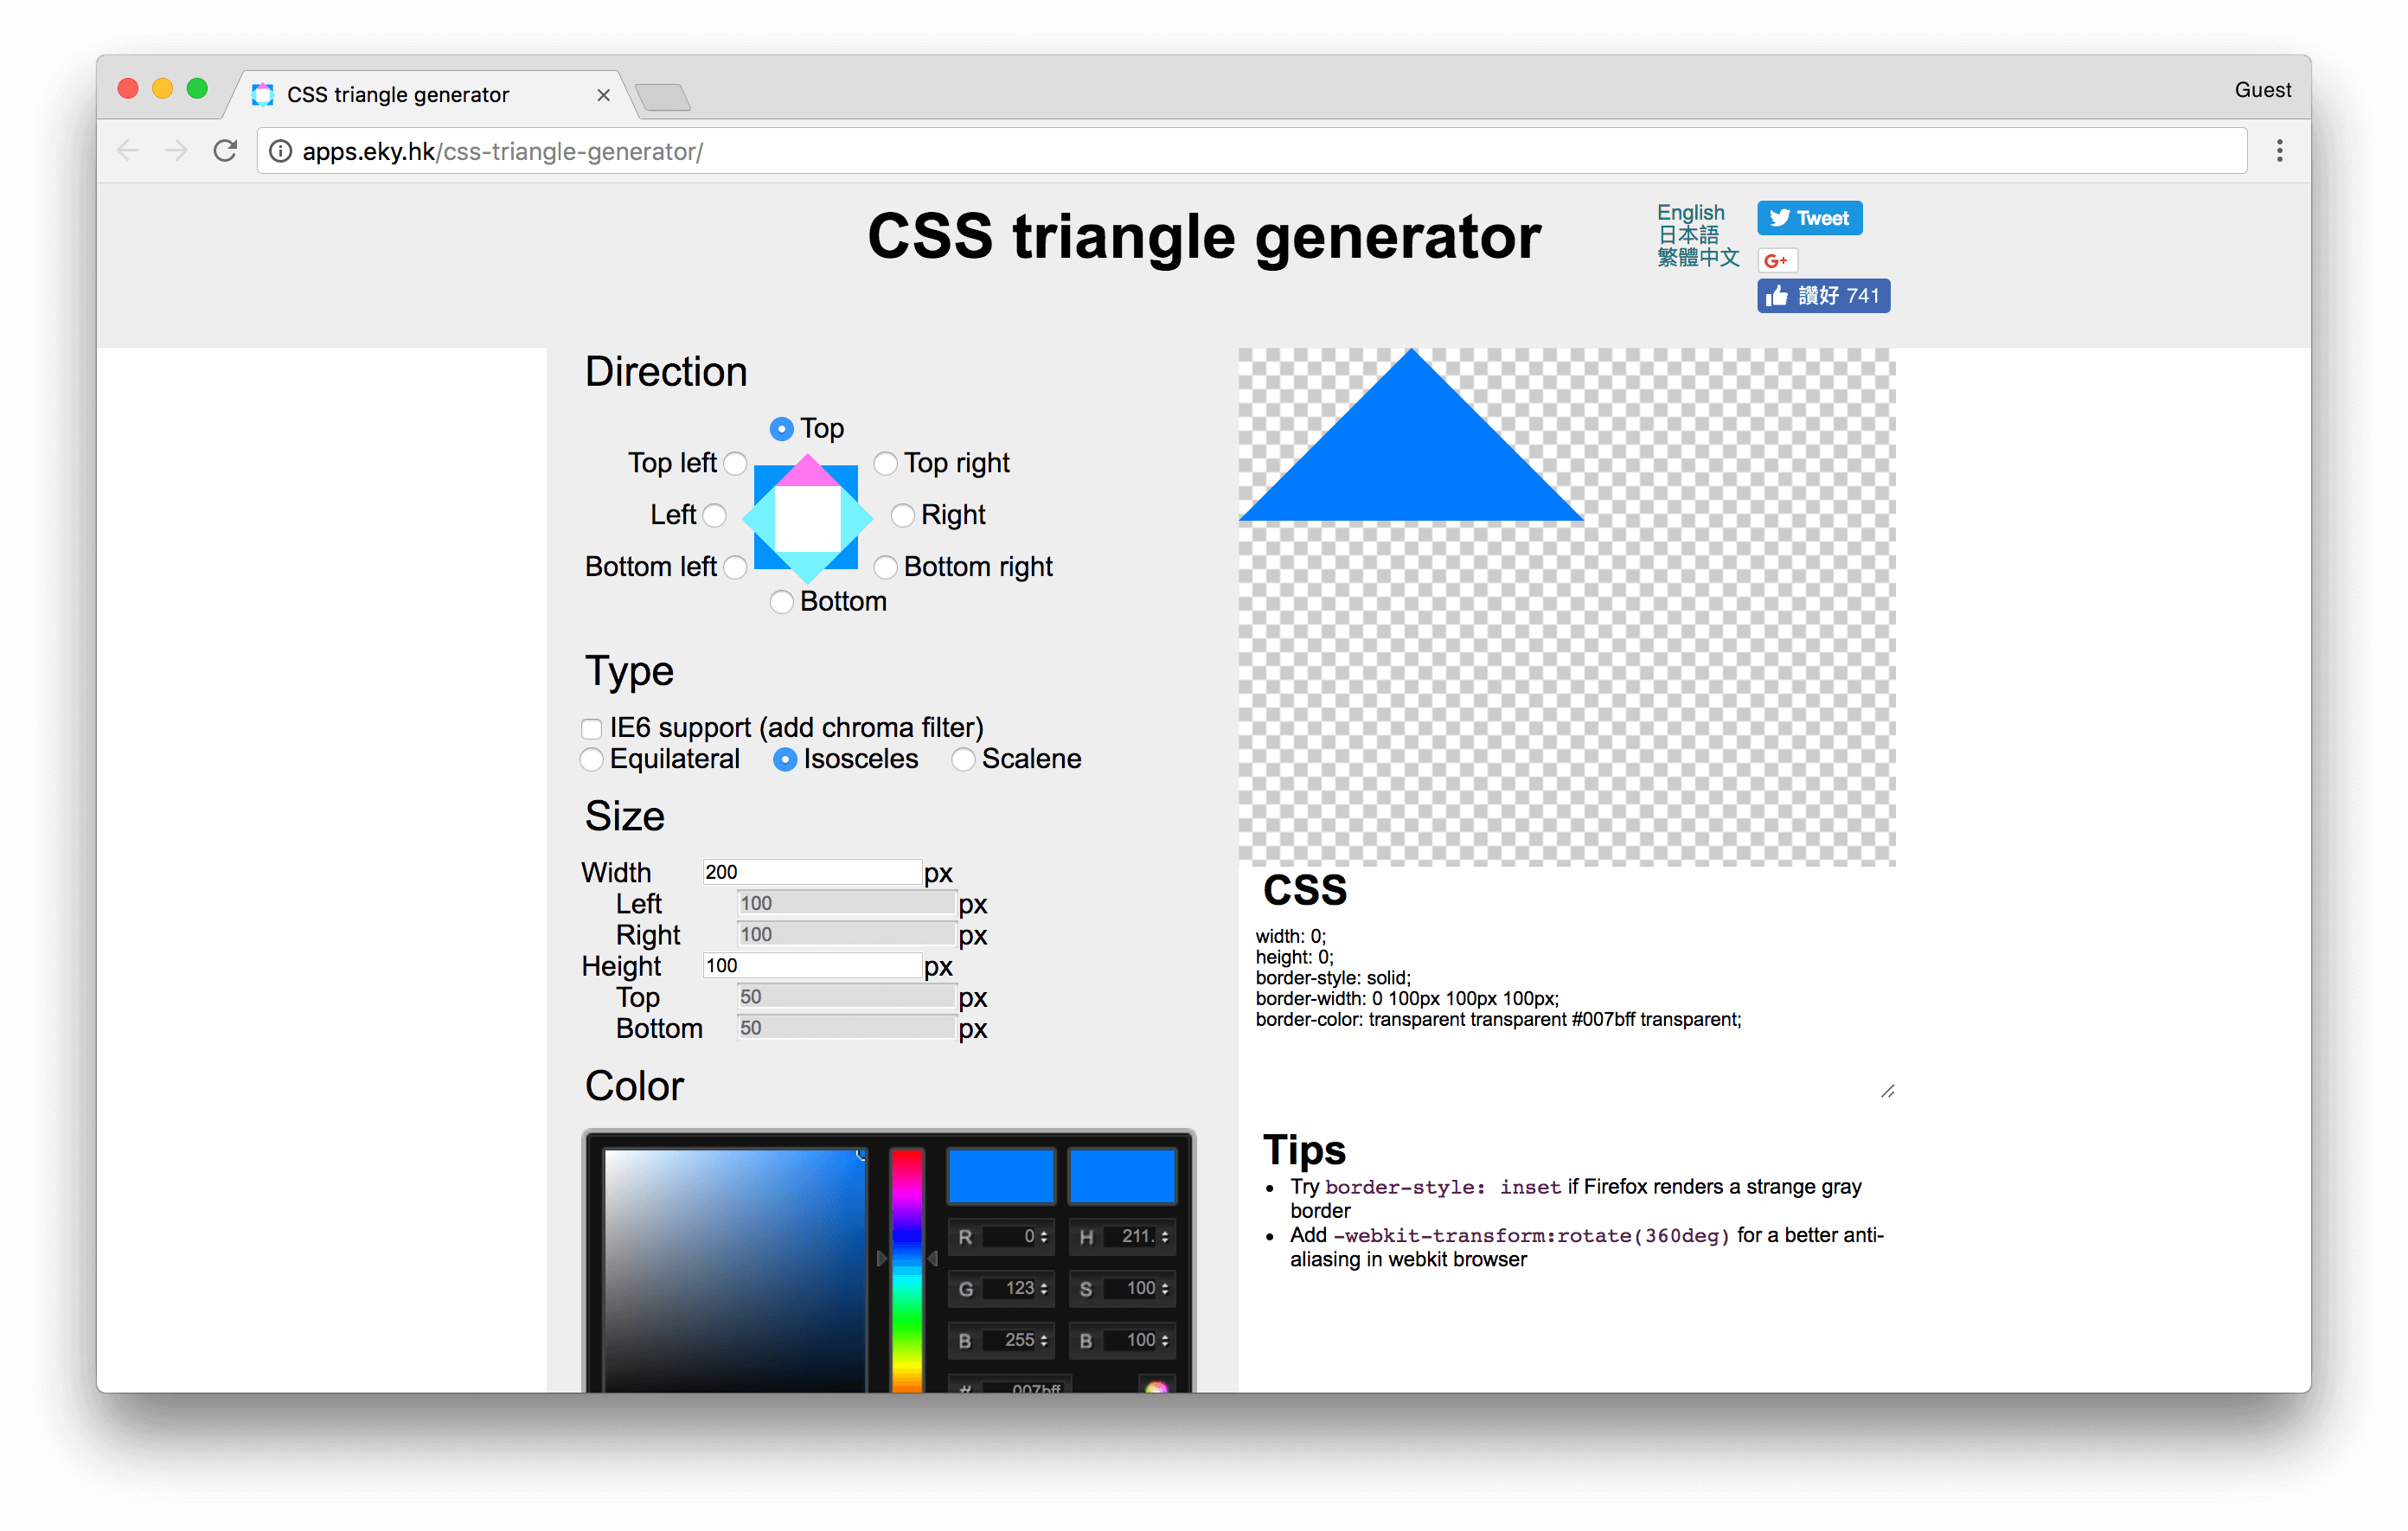 apps.eky.hk/css-triangle-generator